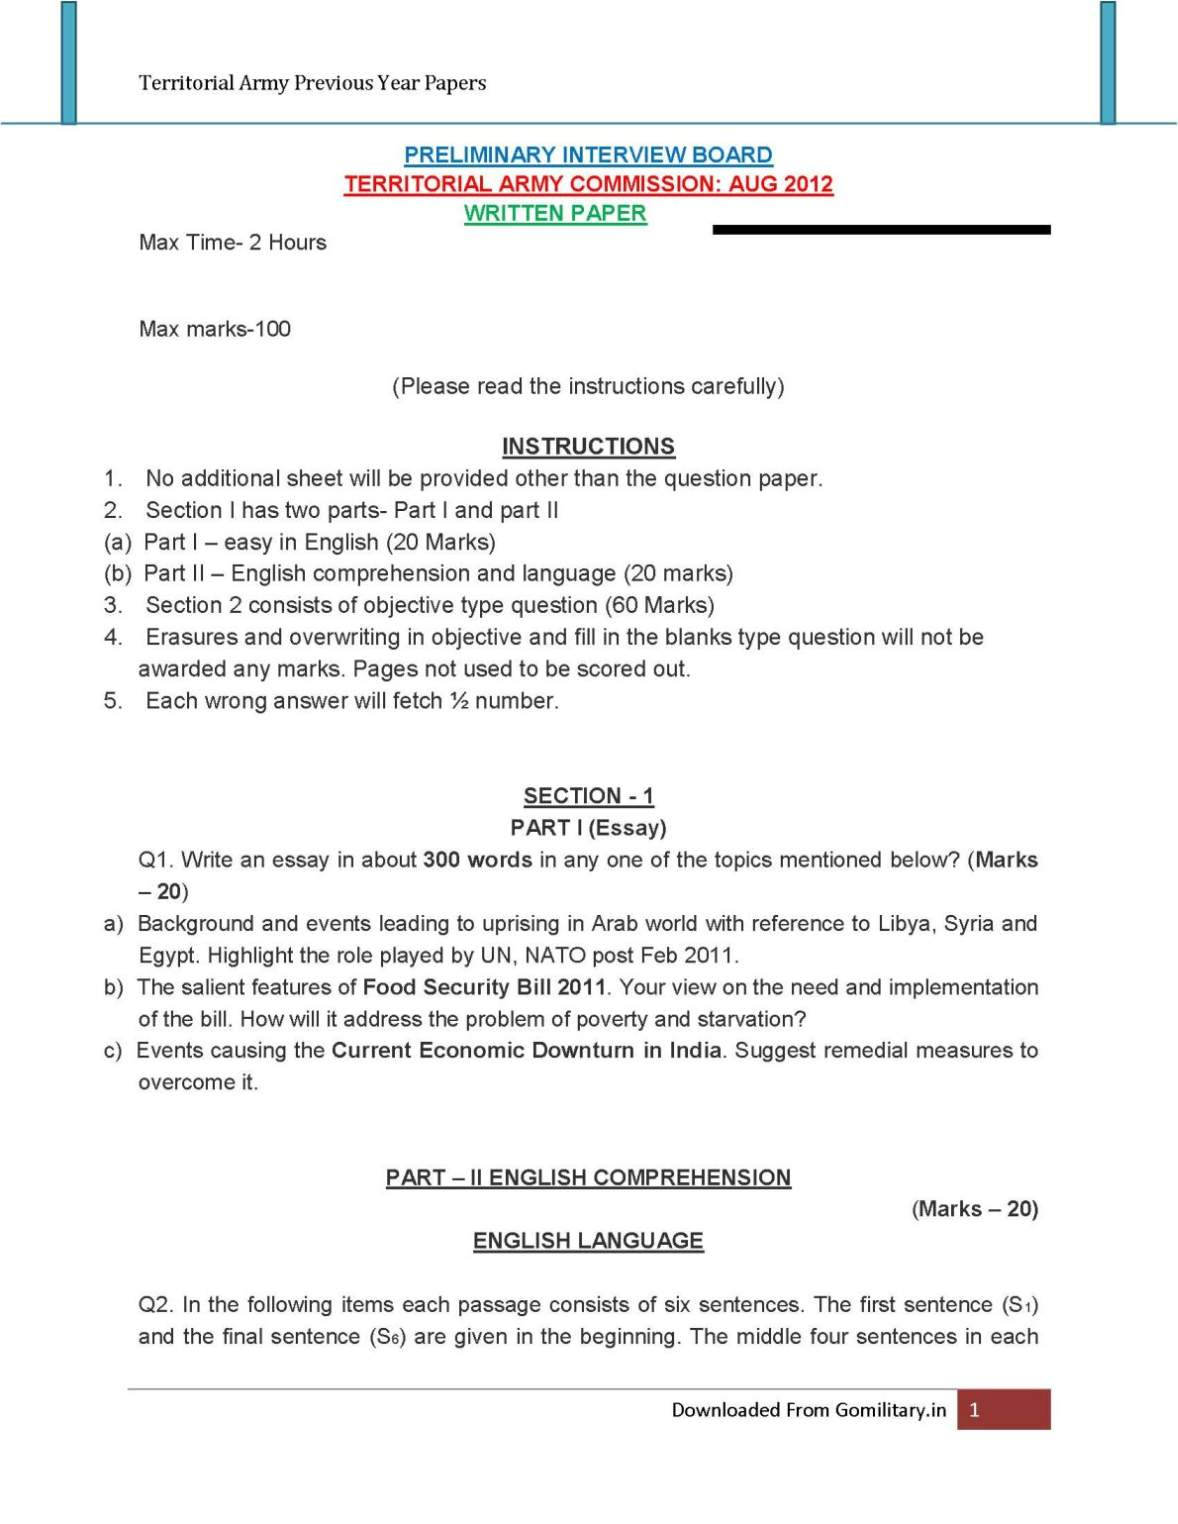 question paper territorial army student forum question paper territorial army